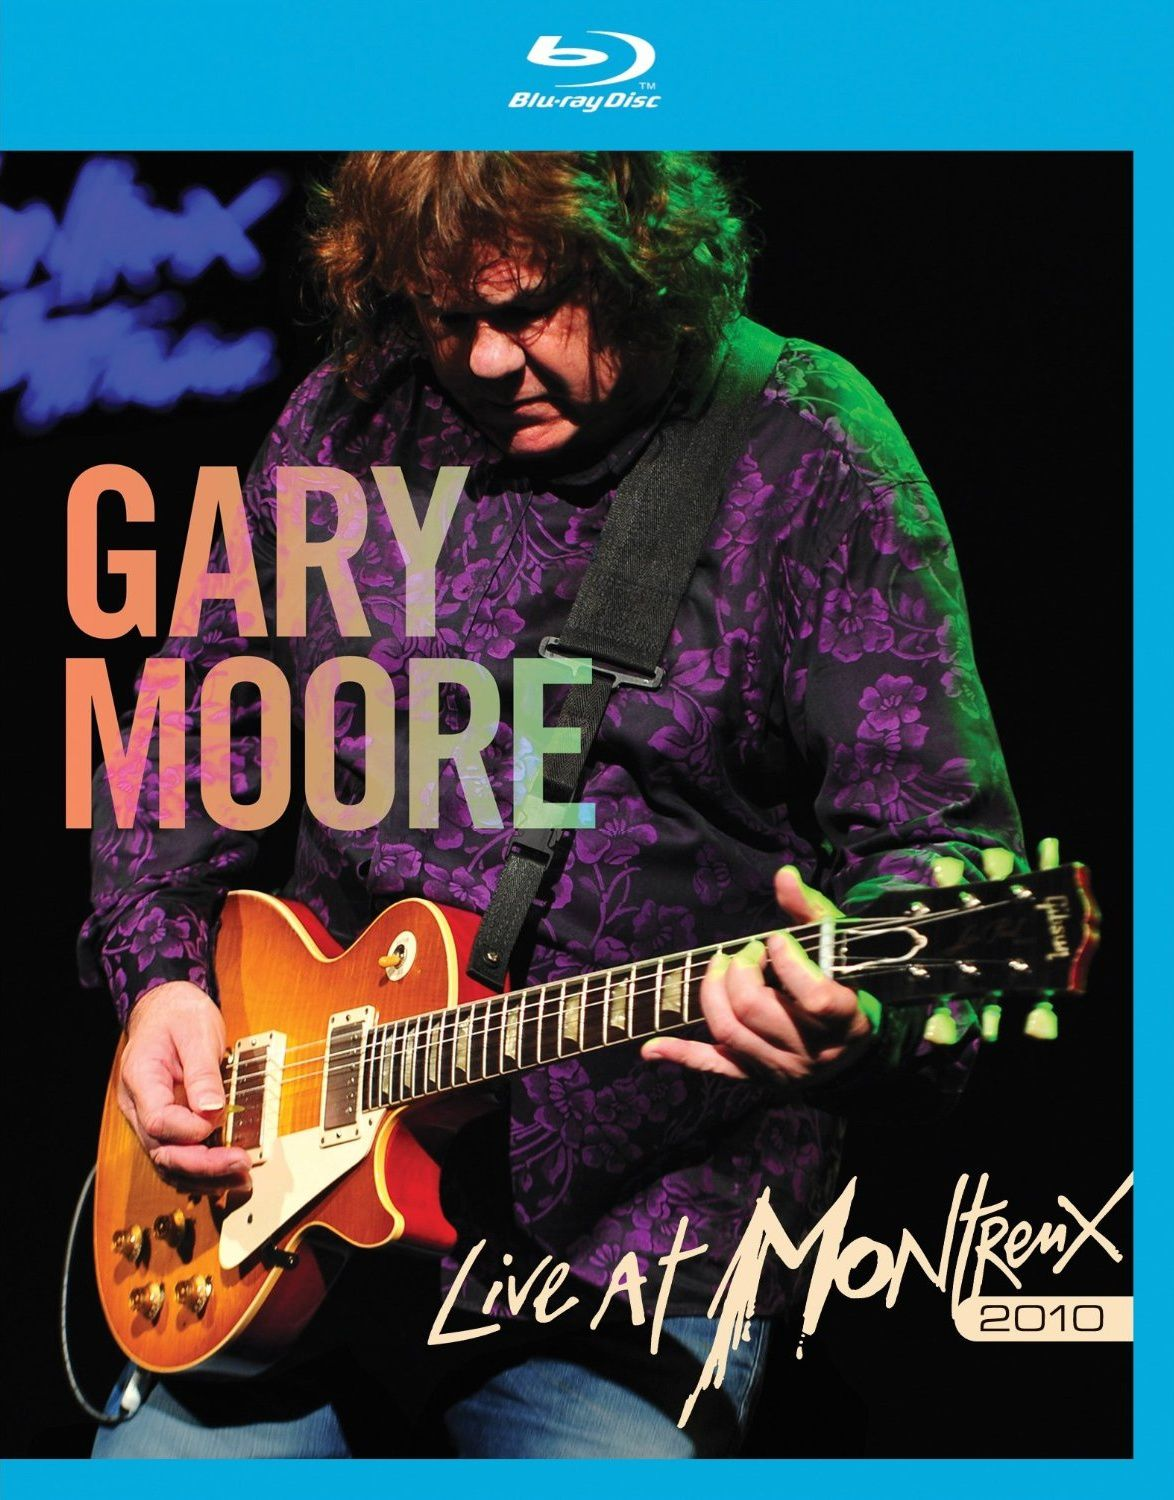 Gary Moore - Live at Montreux 2010 en blu-ray à 9€ only !